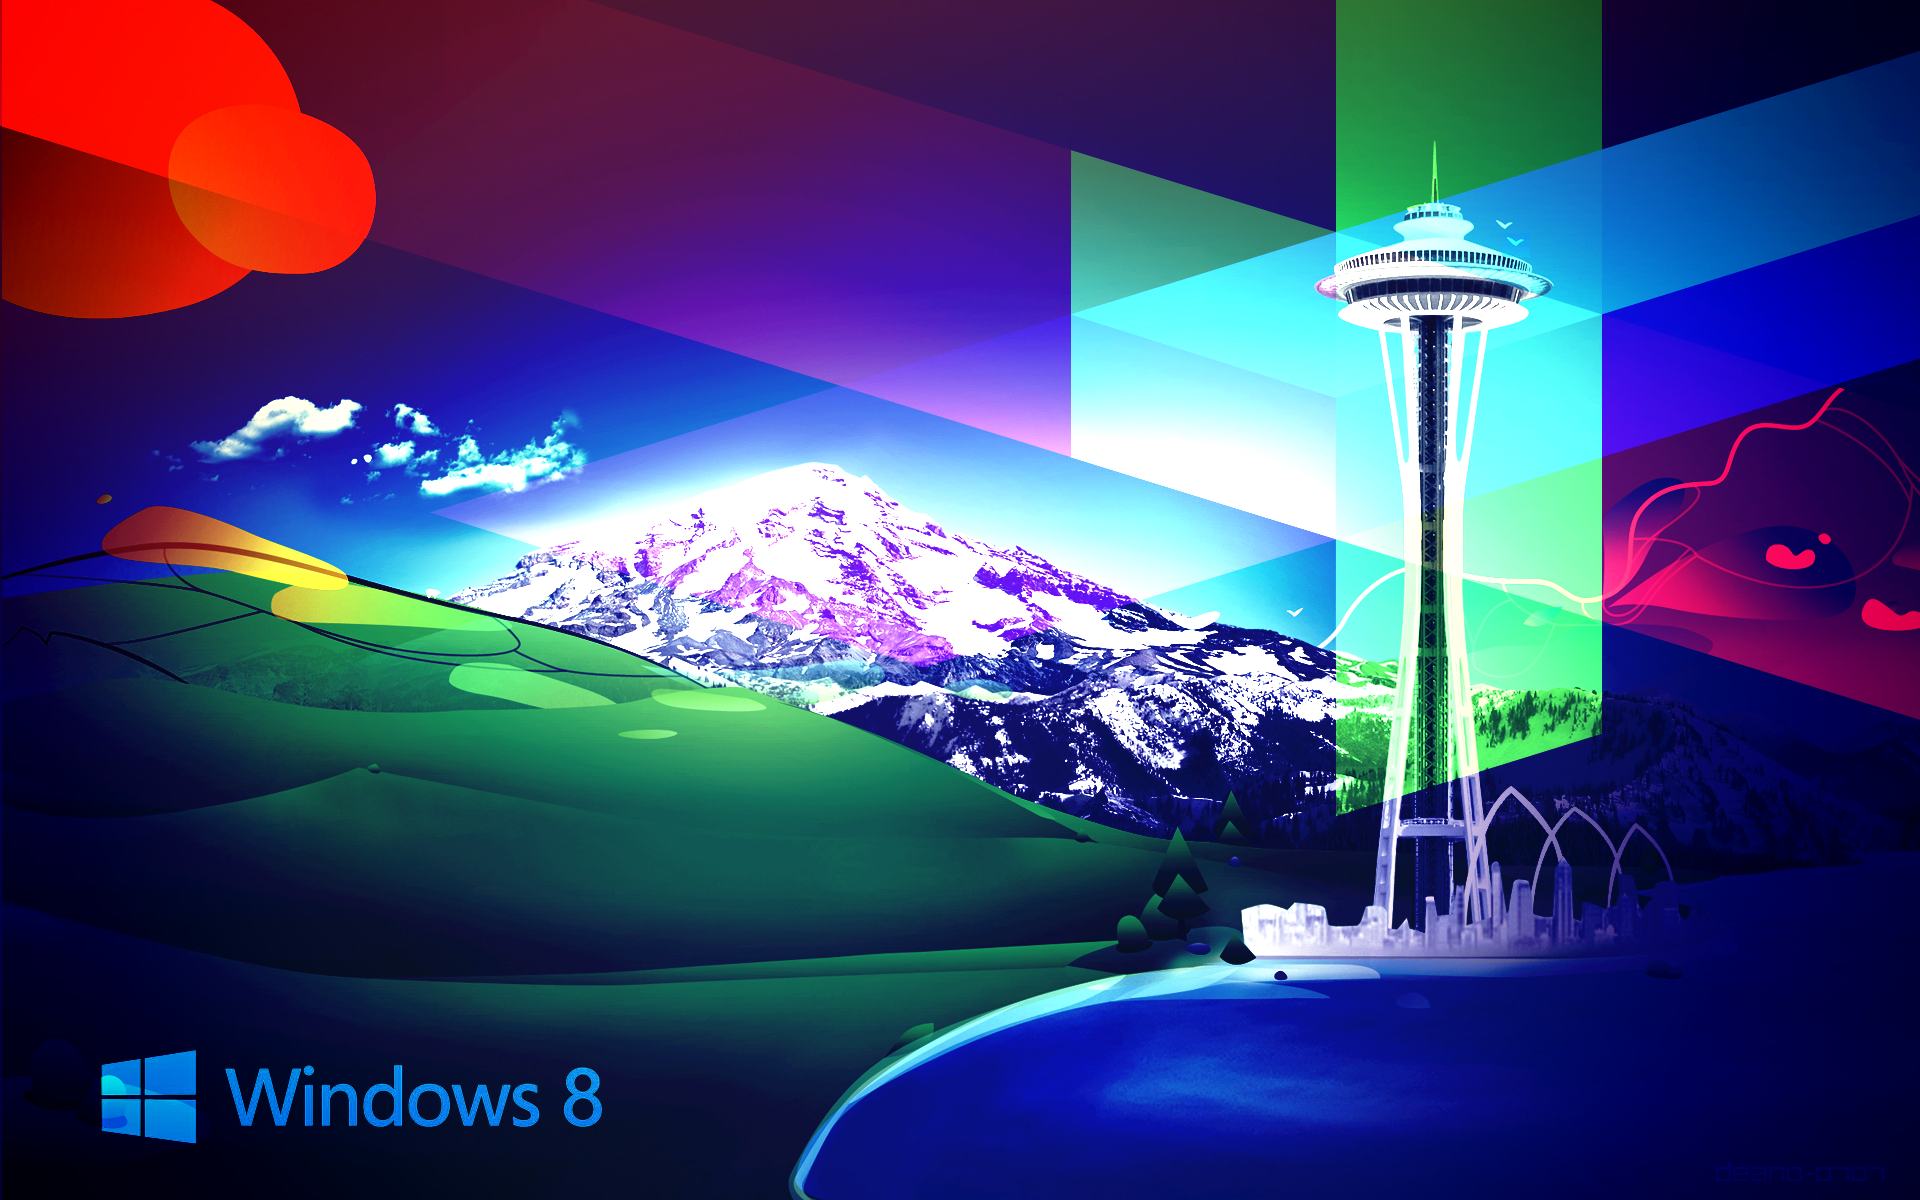 windows 8 wallpapers 33 - [1920 x 1200]